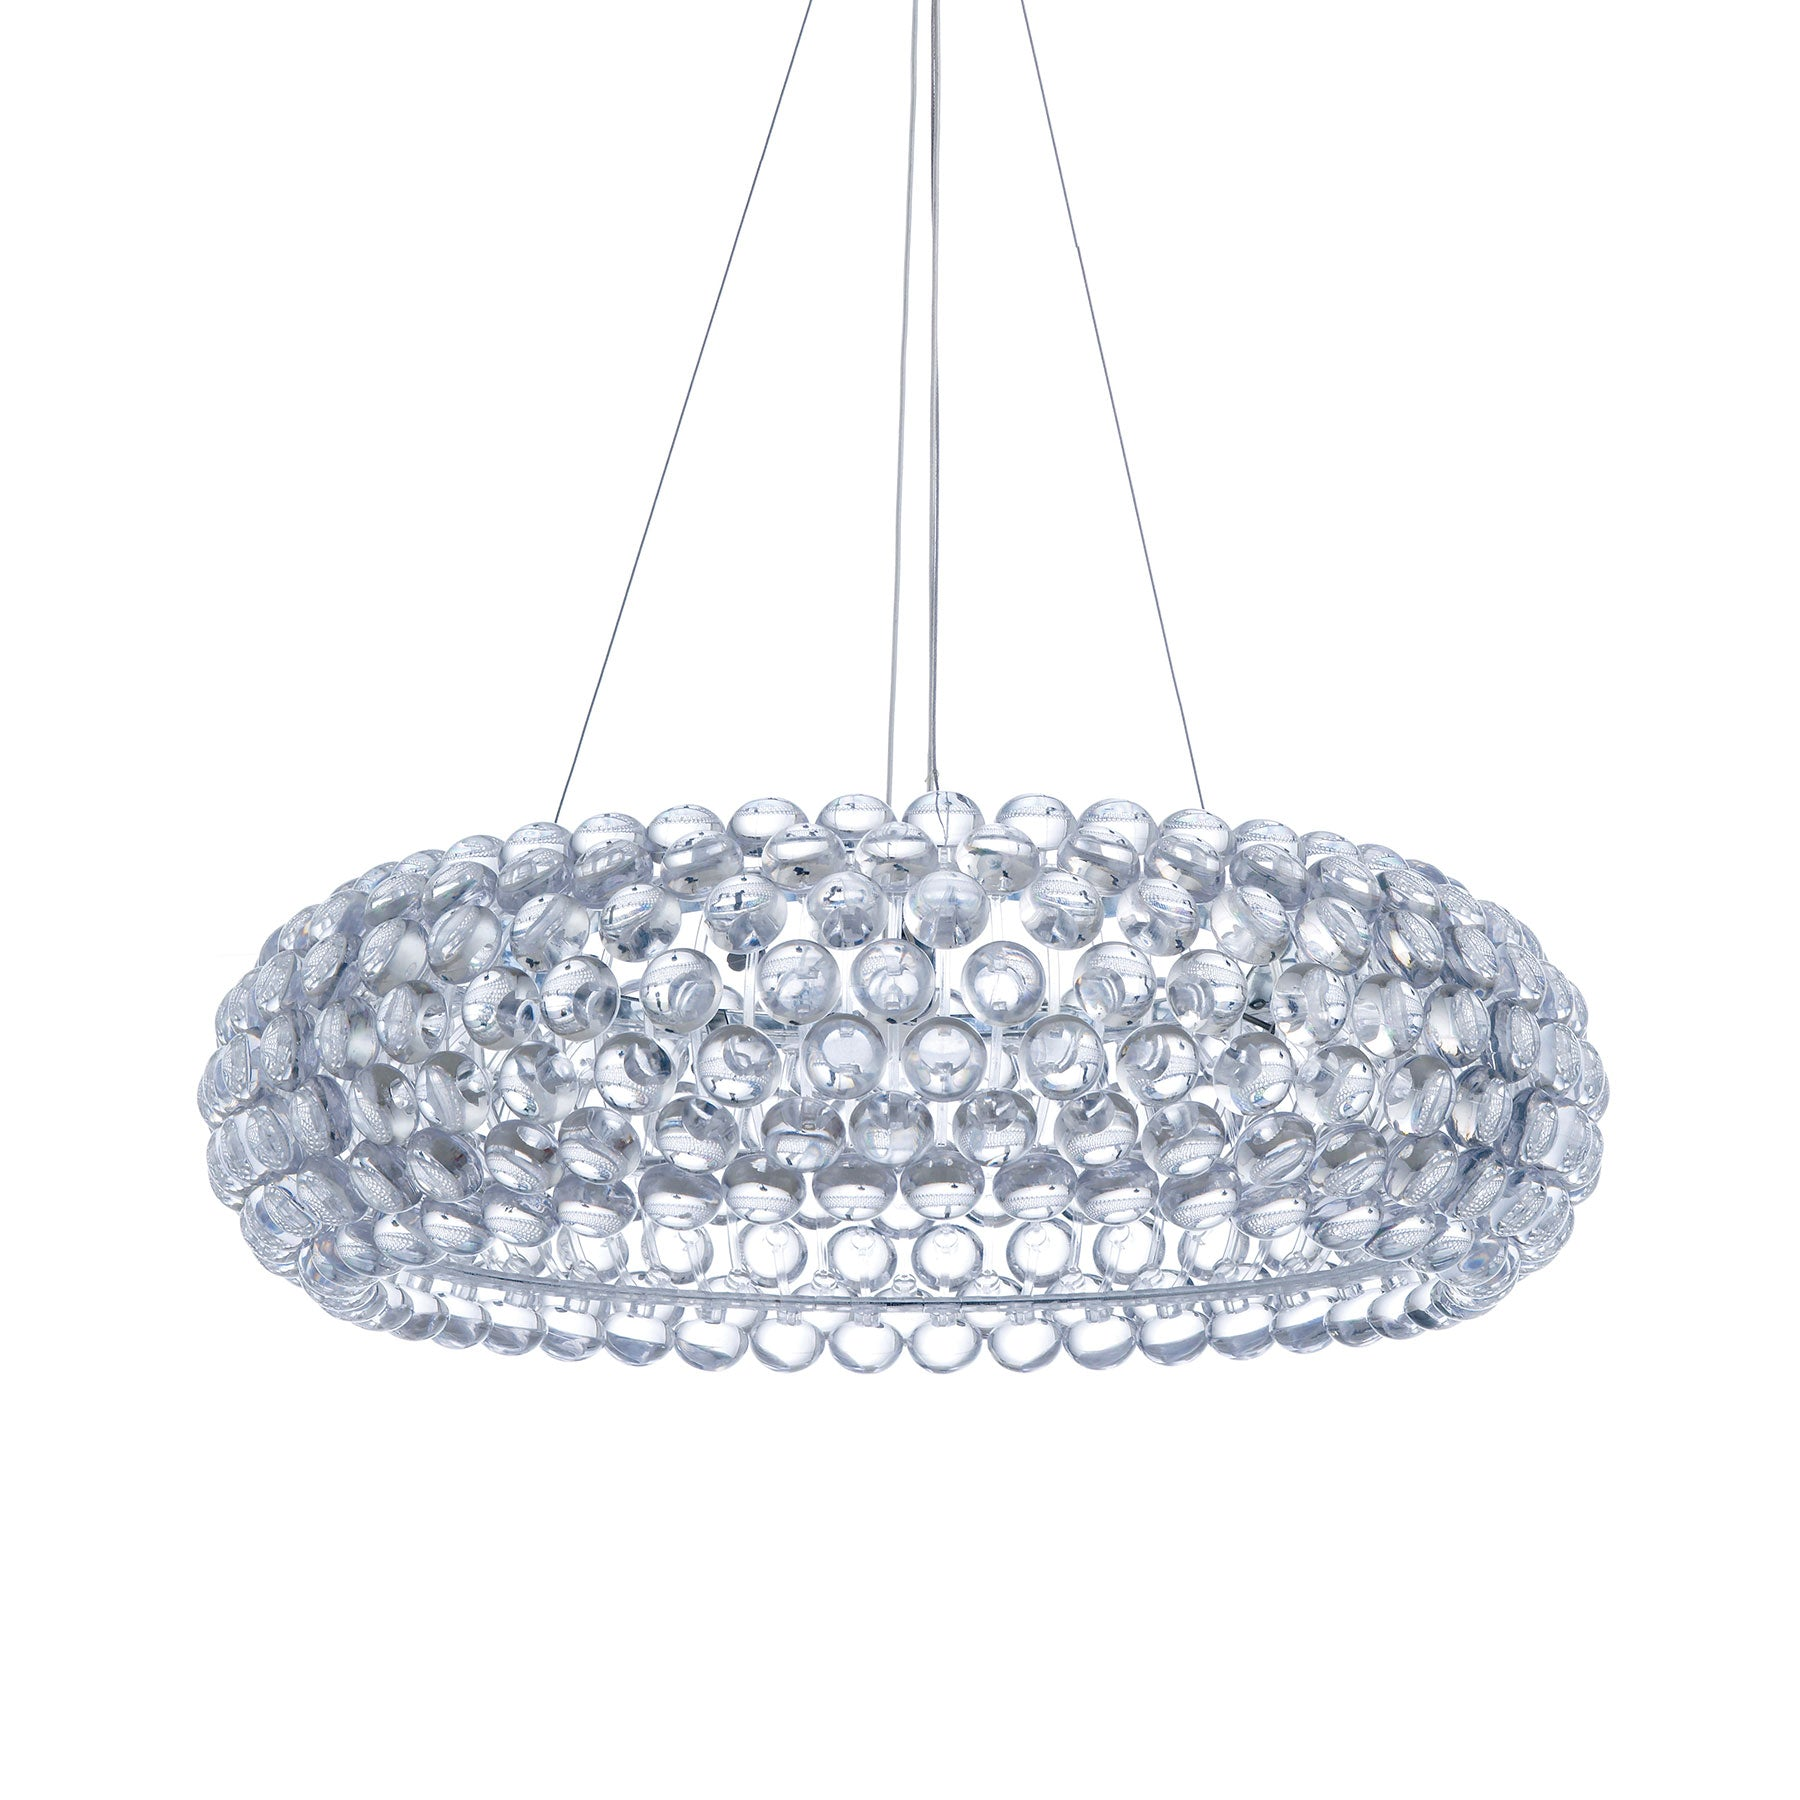 Classy Chrome and Clear Acrylic Chandelier